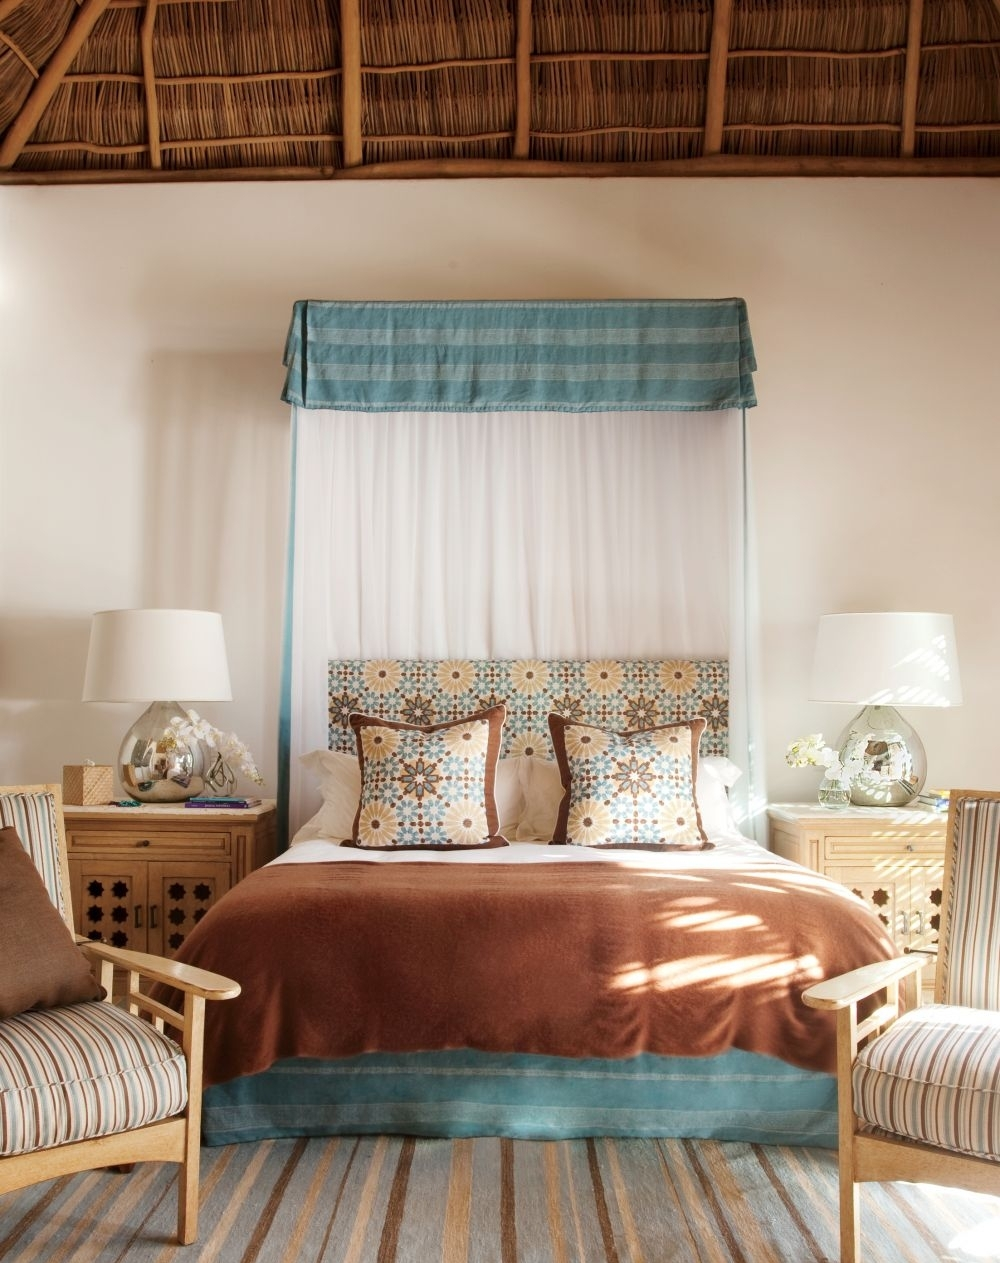 40 Bohemian Bedrooms To Fashion Your Eclectic Tastes After on Boho Master Bedroom Ideas  id=22182